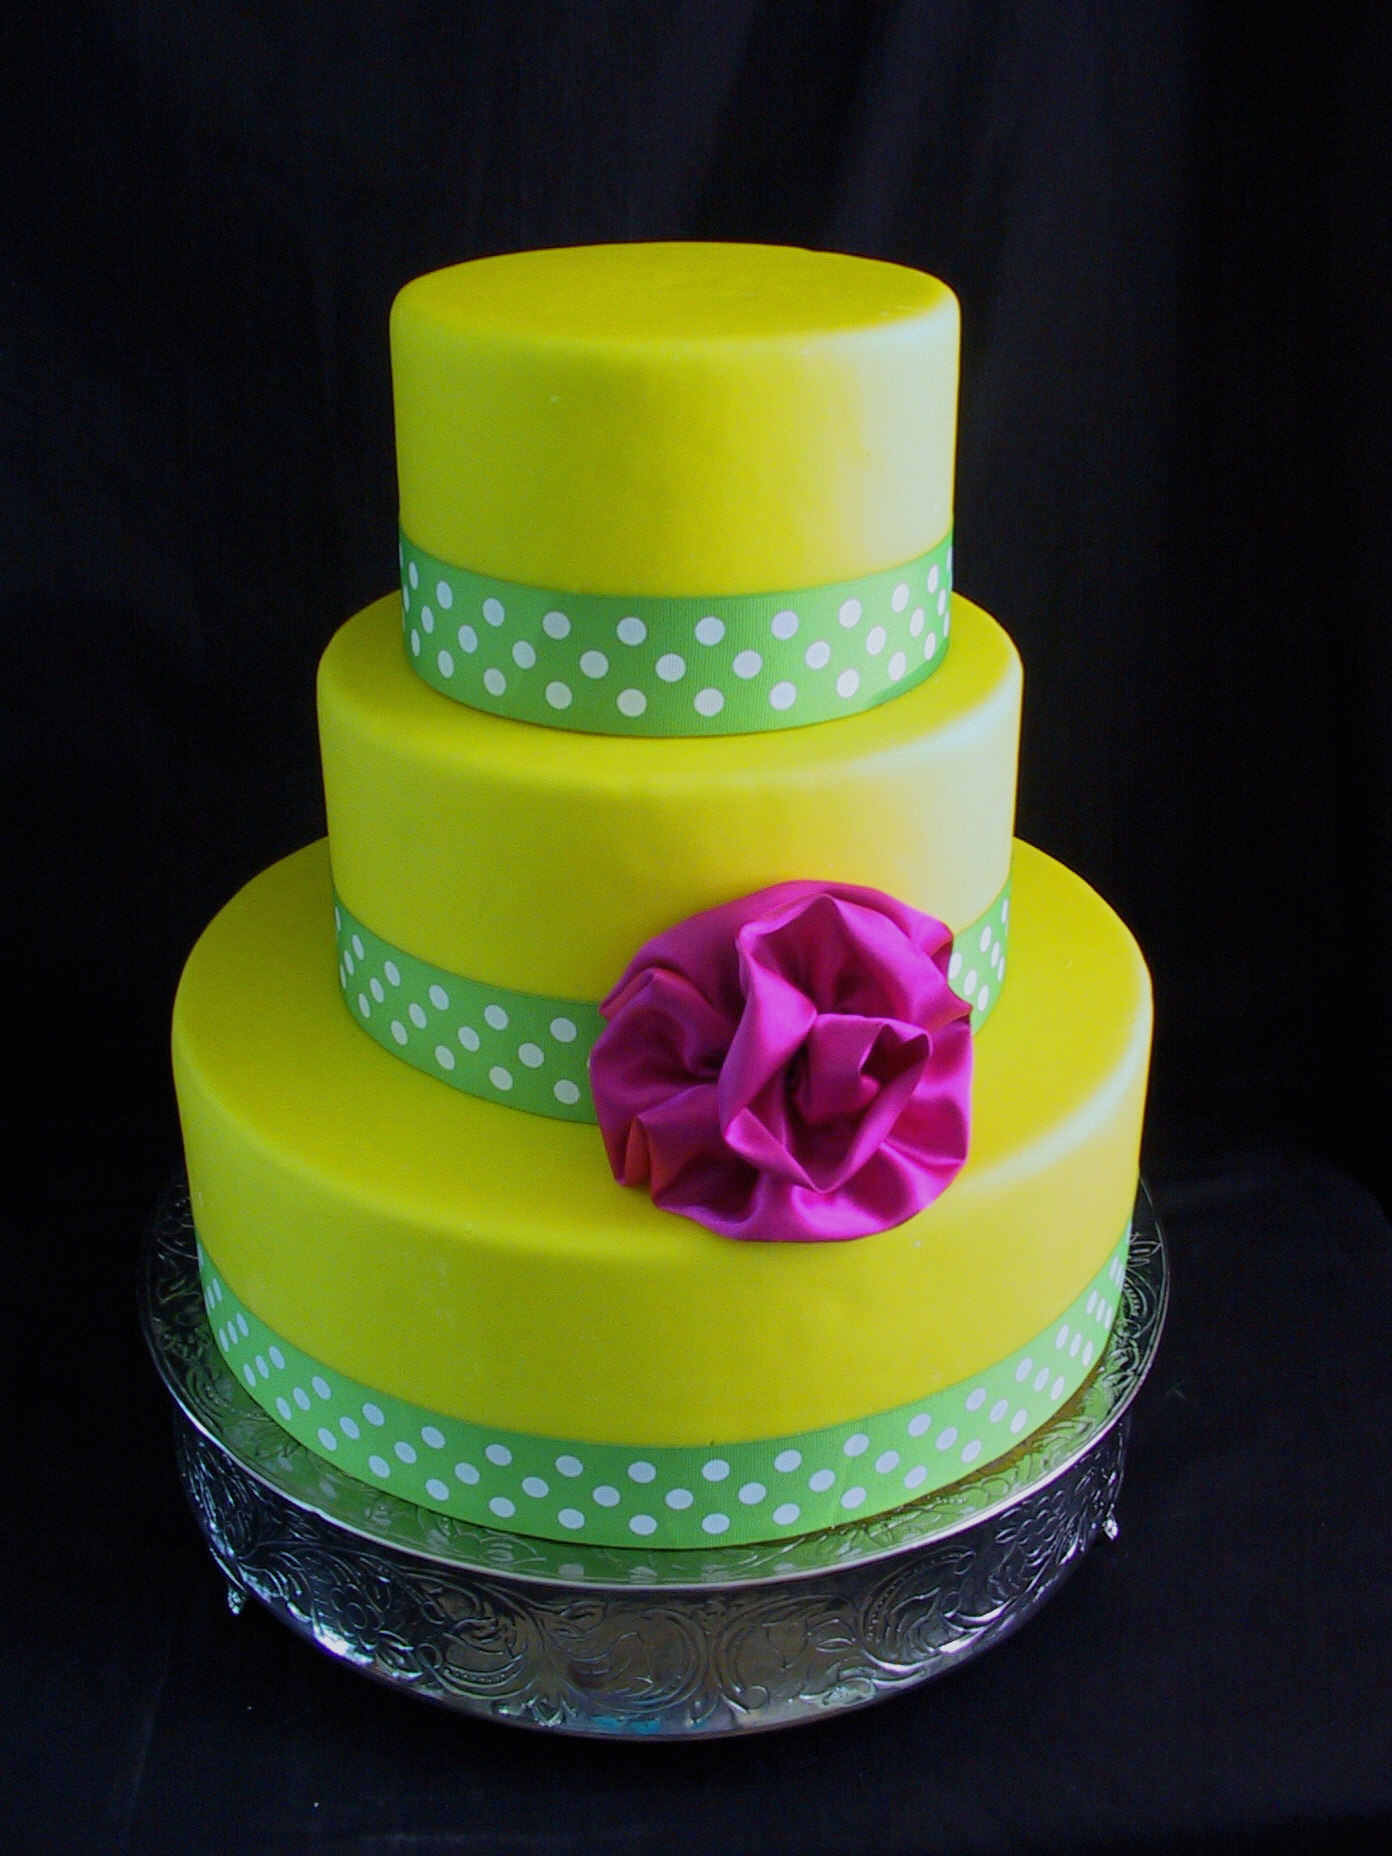 9 Photos of Yellow Fondant Bow Cakes